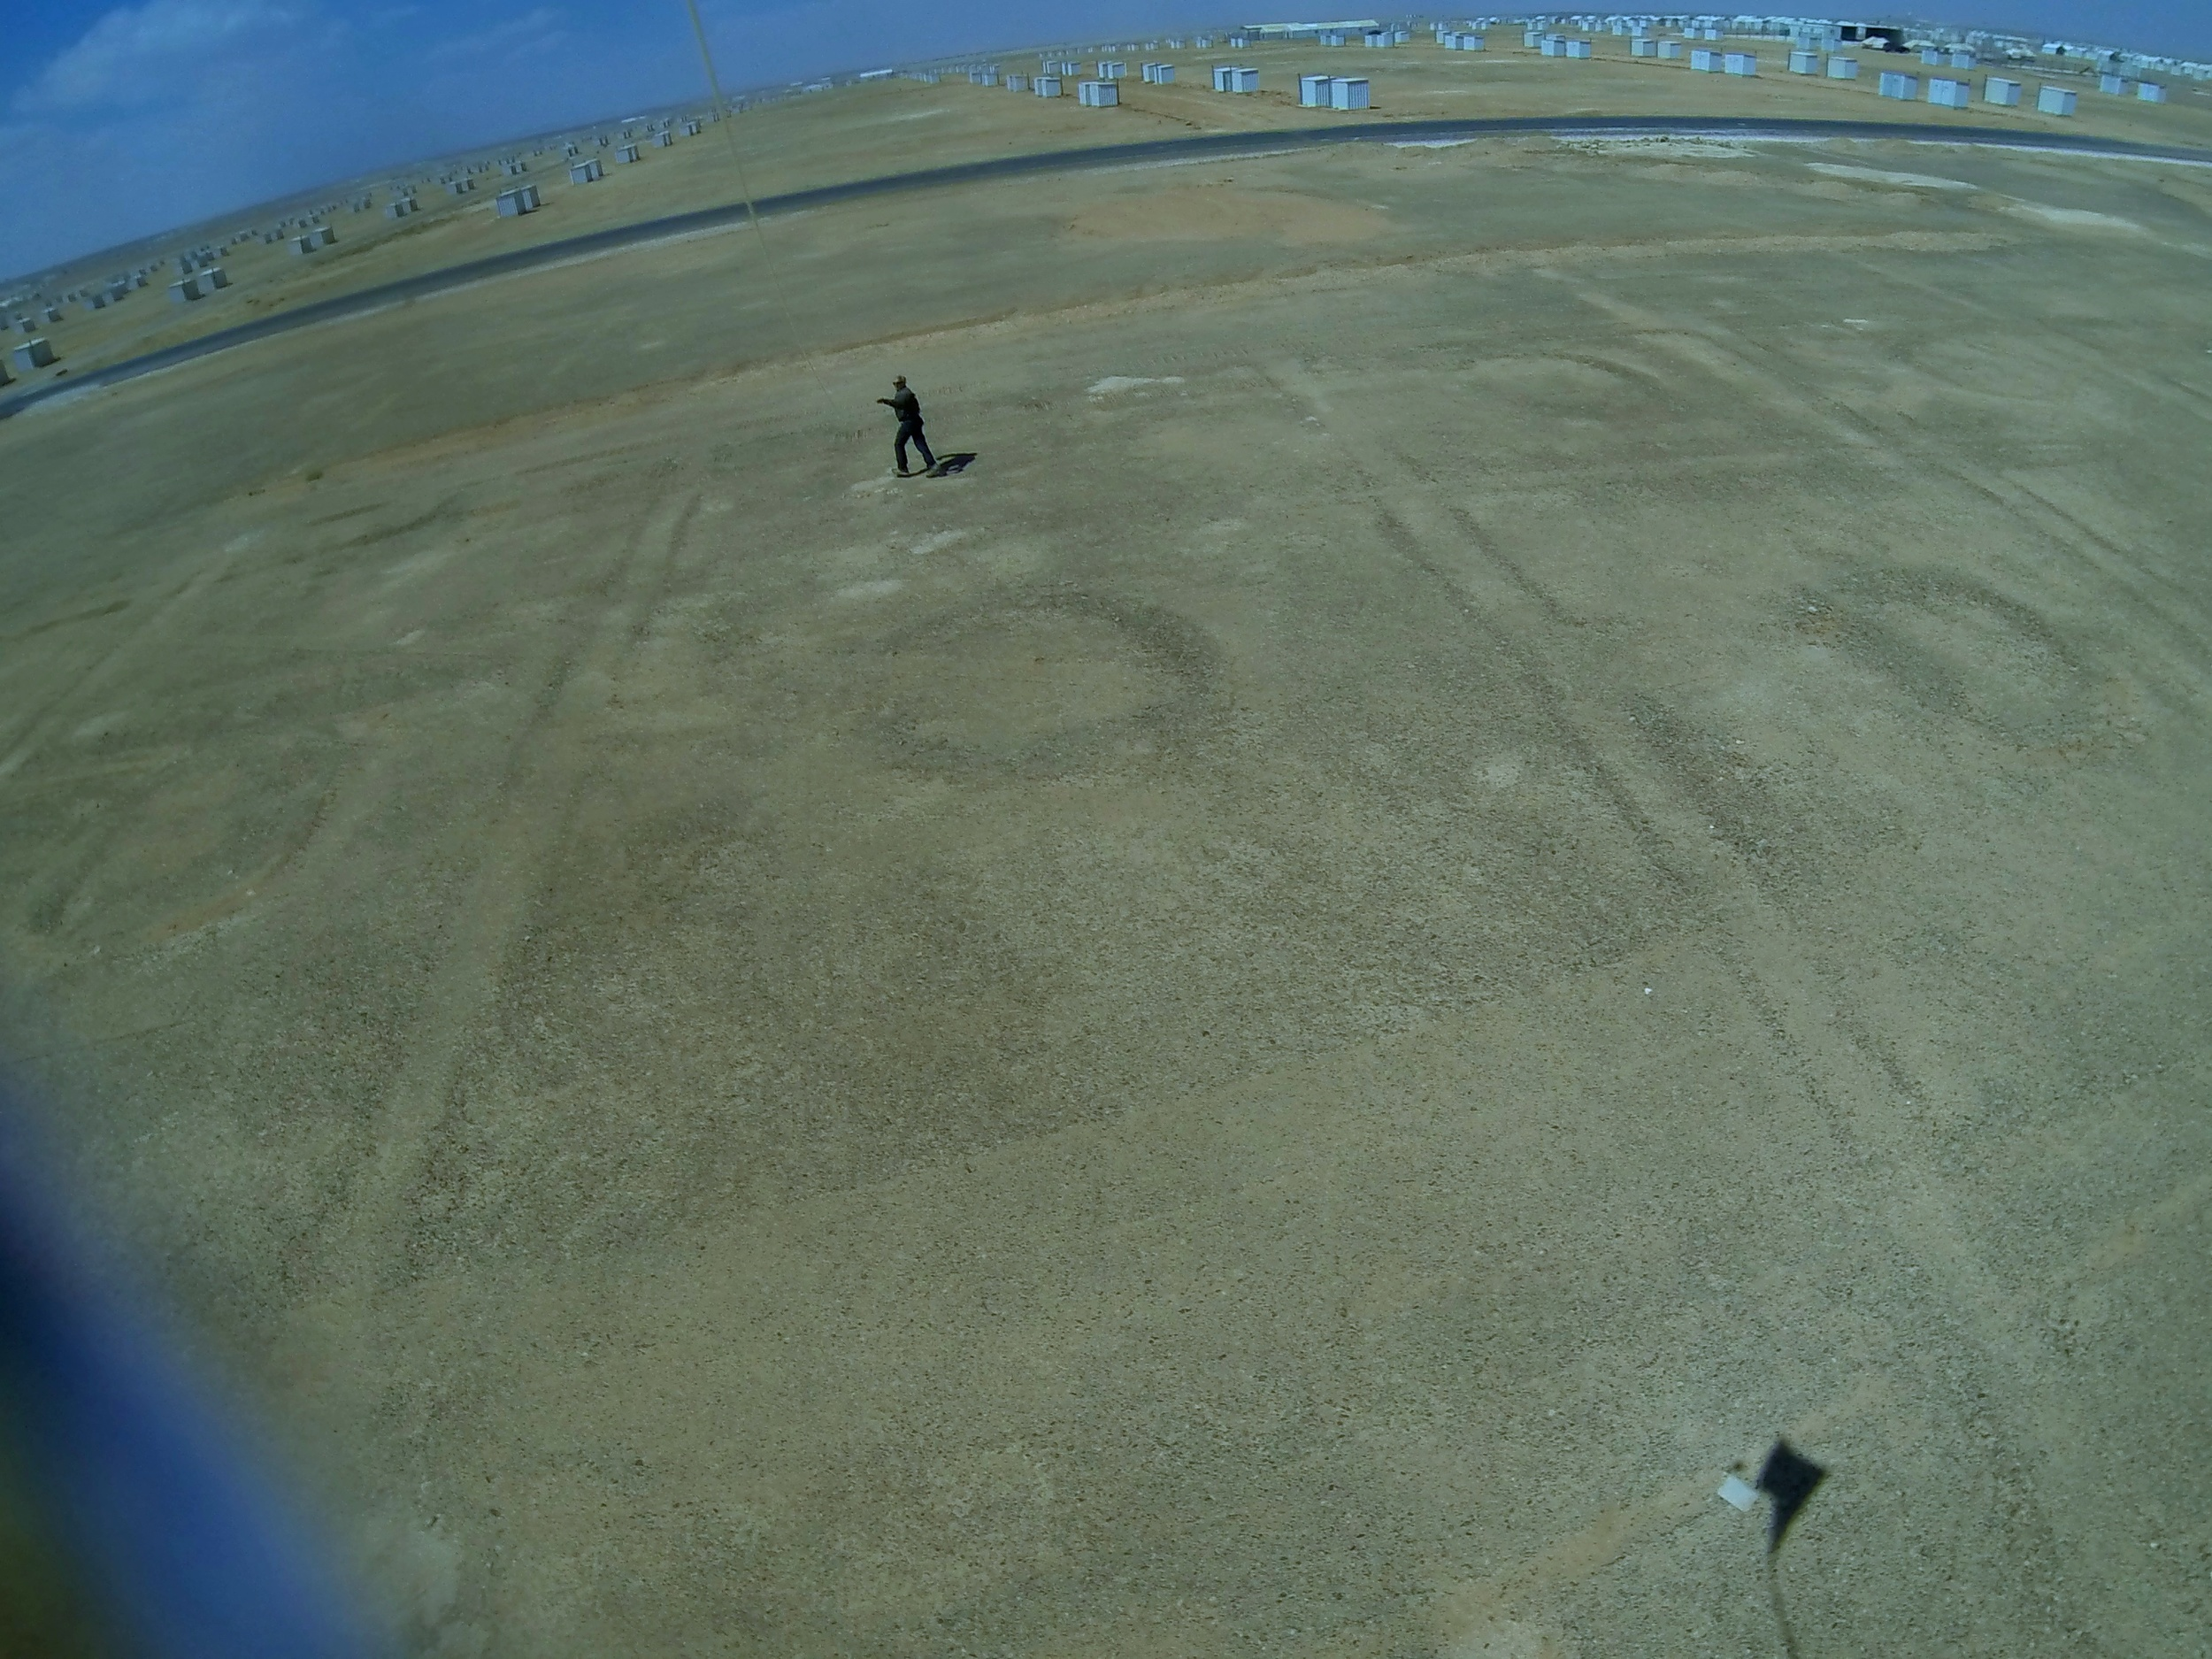 Getting the kite and Go Pro into the air over Azraq refugee camp in Jordan